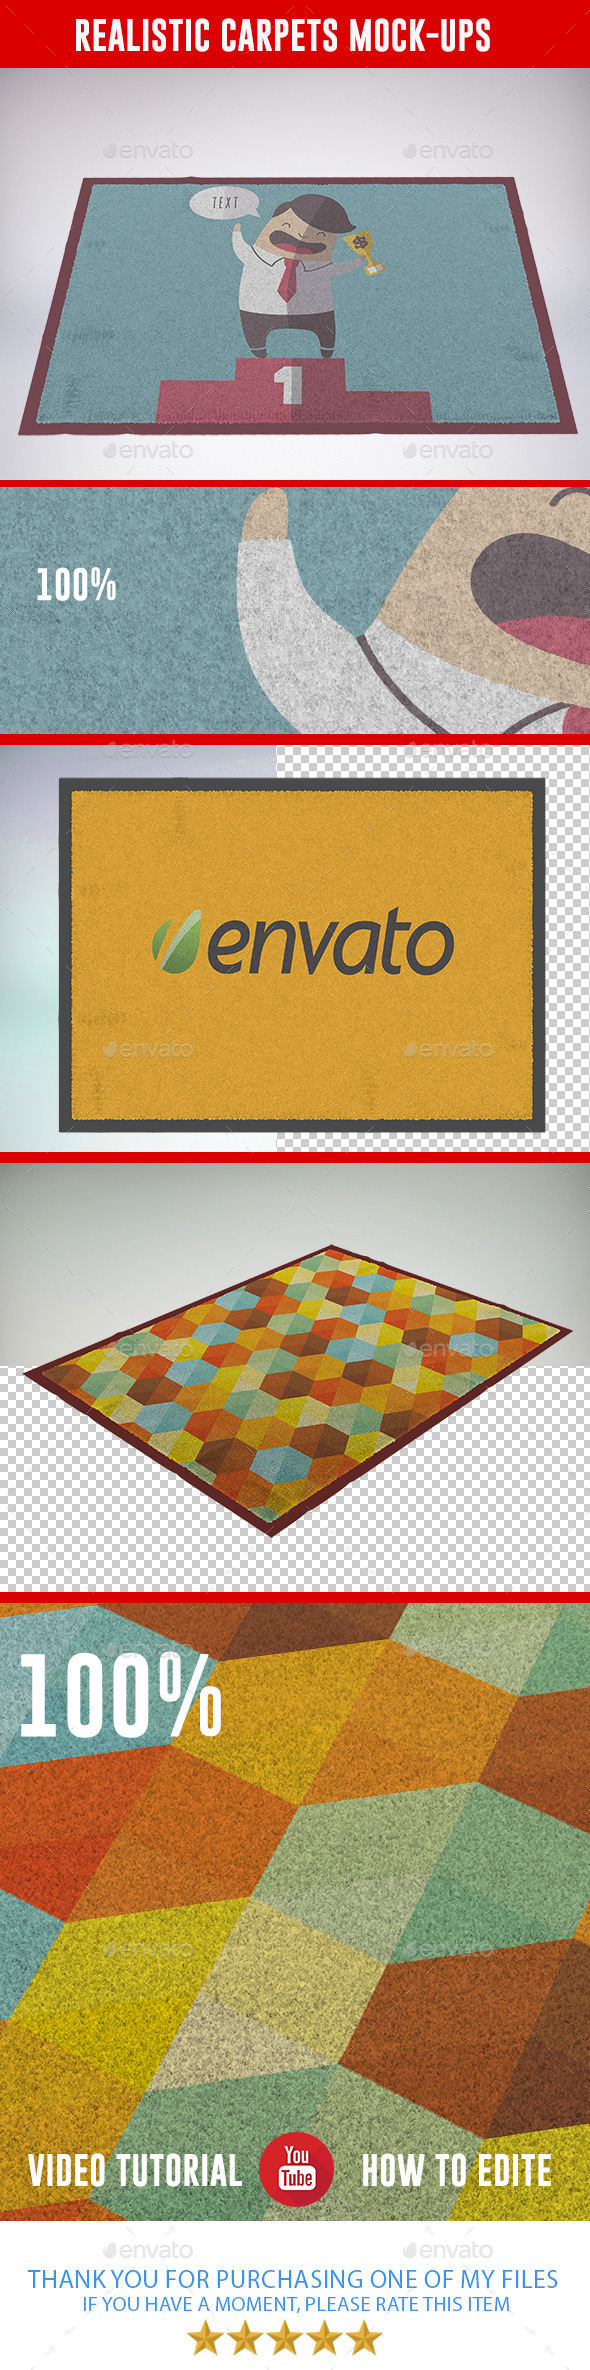 GraphicRiver Realistic Carpets Mock-ups 8951973